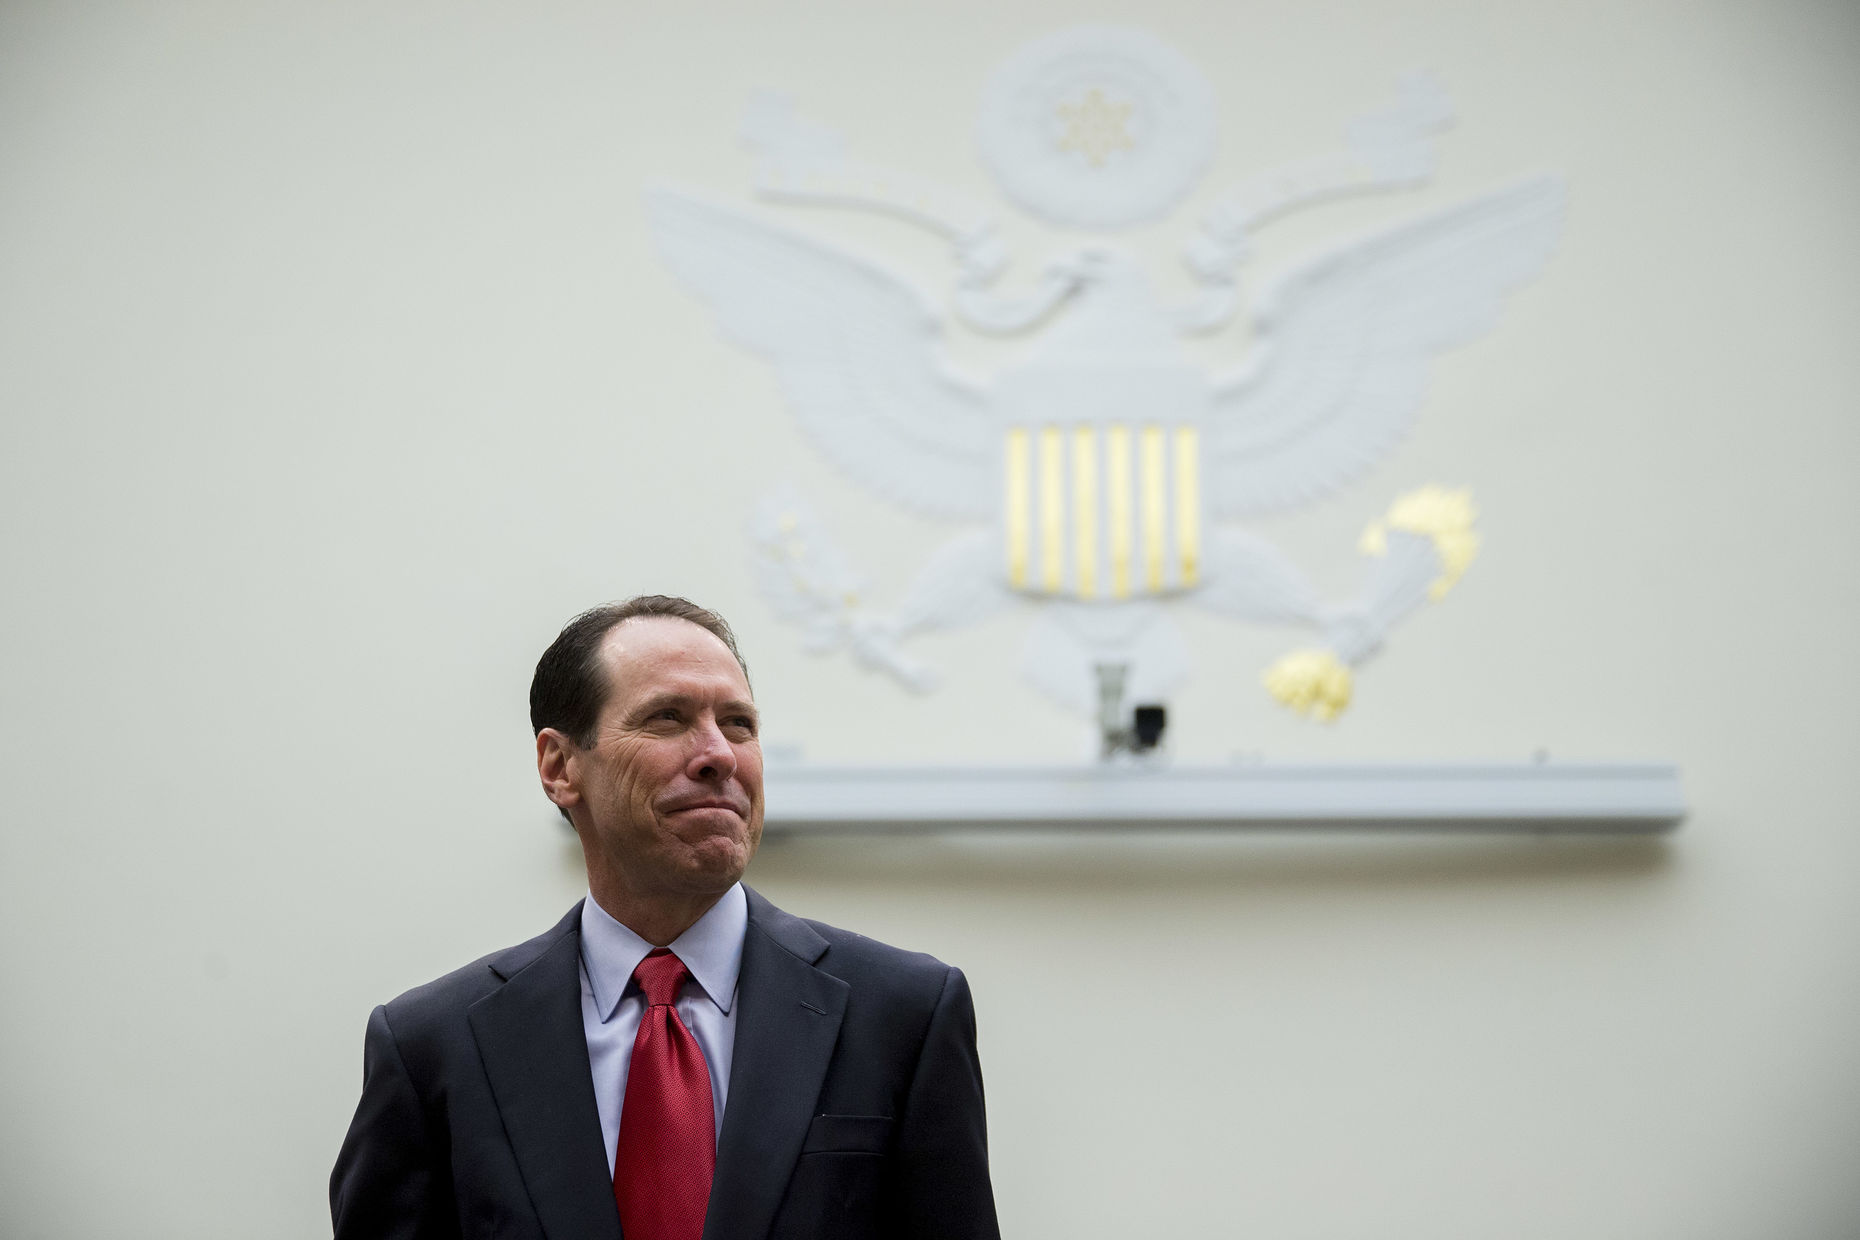 AT&T CEO Randall Stephenson. Photo by Bloomberg.